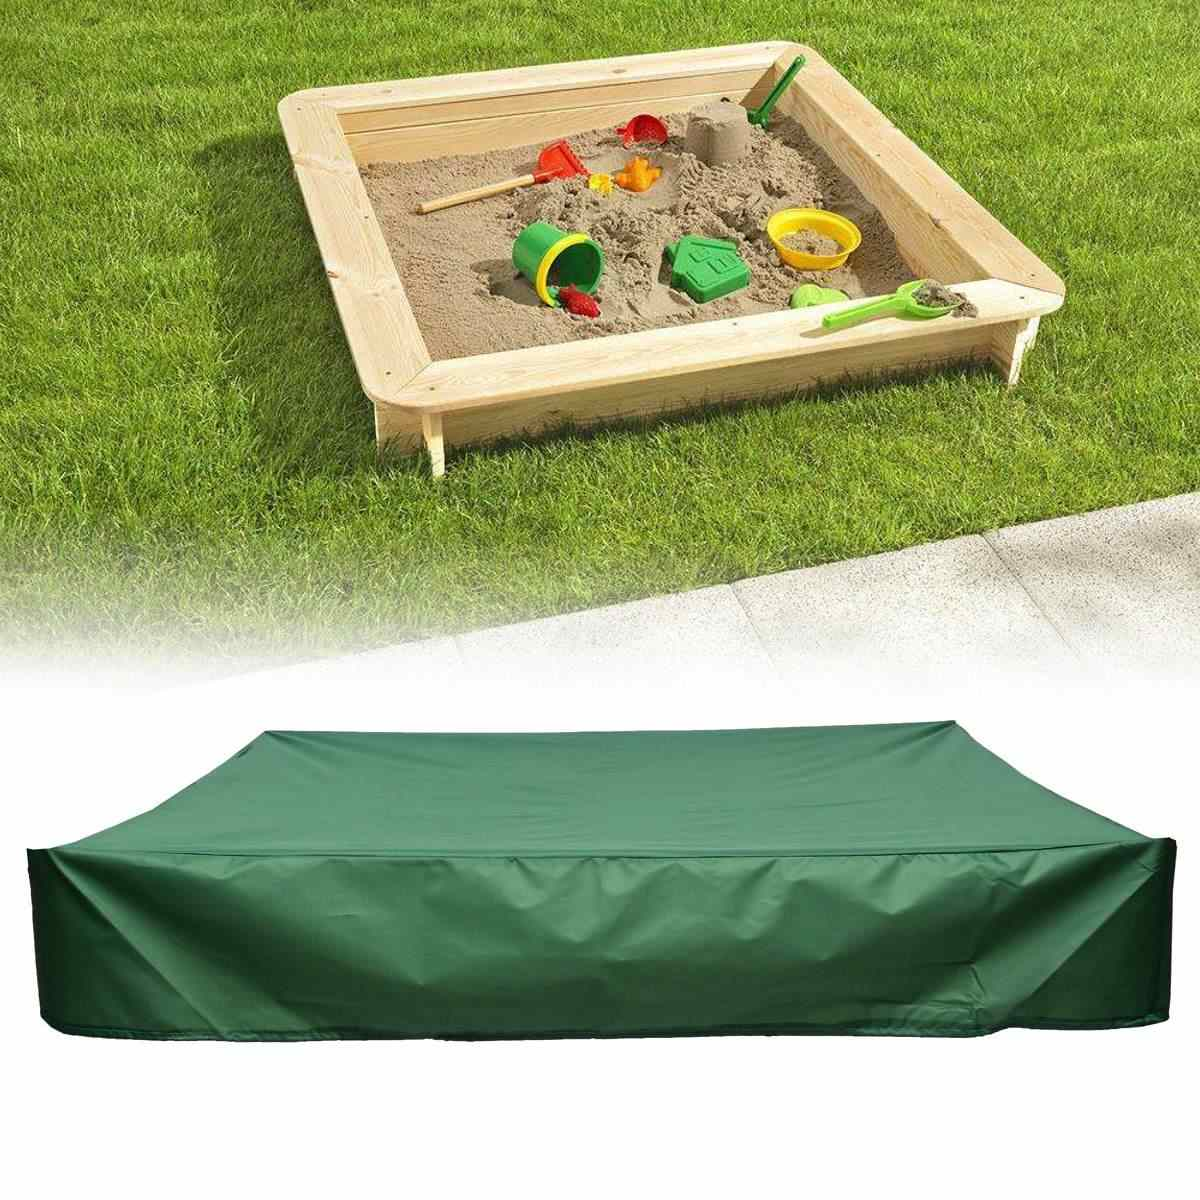 Square Waterproof Oxford Cloth Dust Cover Canopy Drawstring Sandbox Sandpit Dustproof Cover 120/150/180/200cm All-Purpose